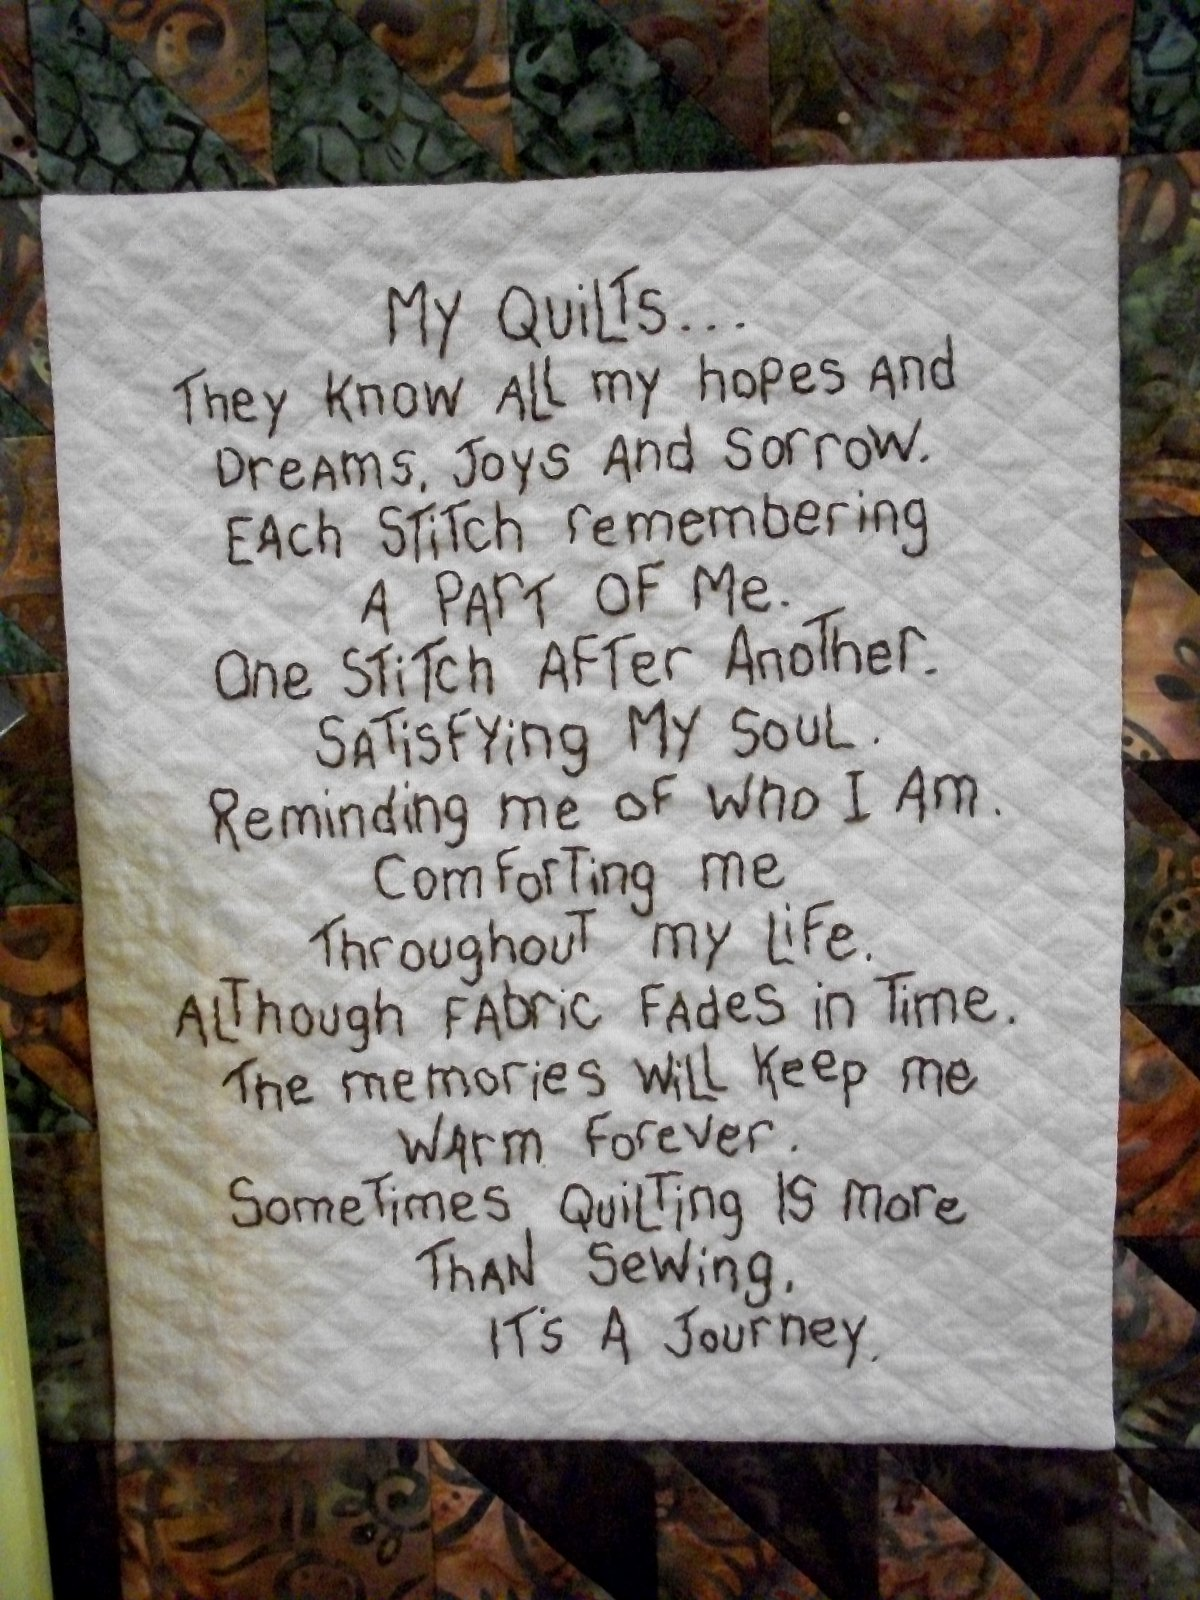 The Good Life-My Quilts - stitchery